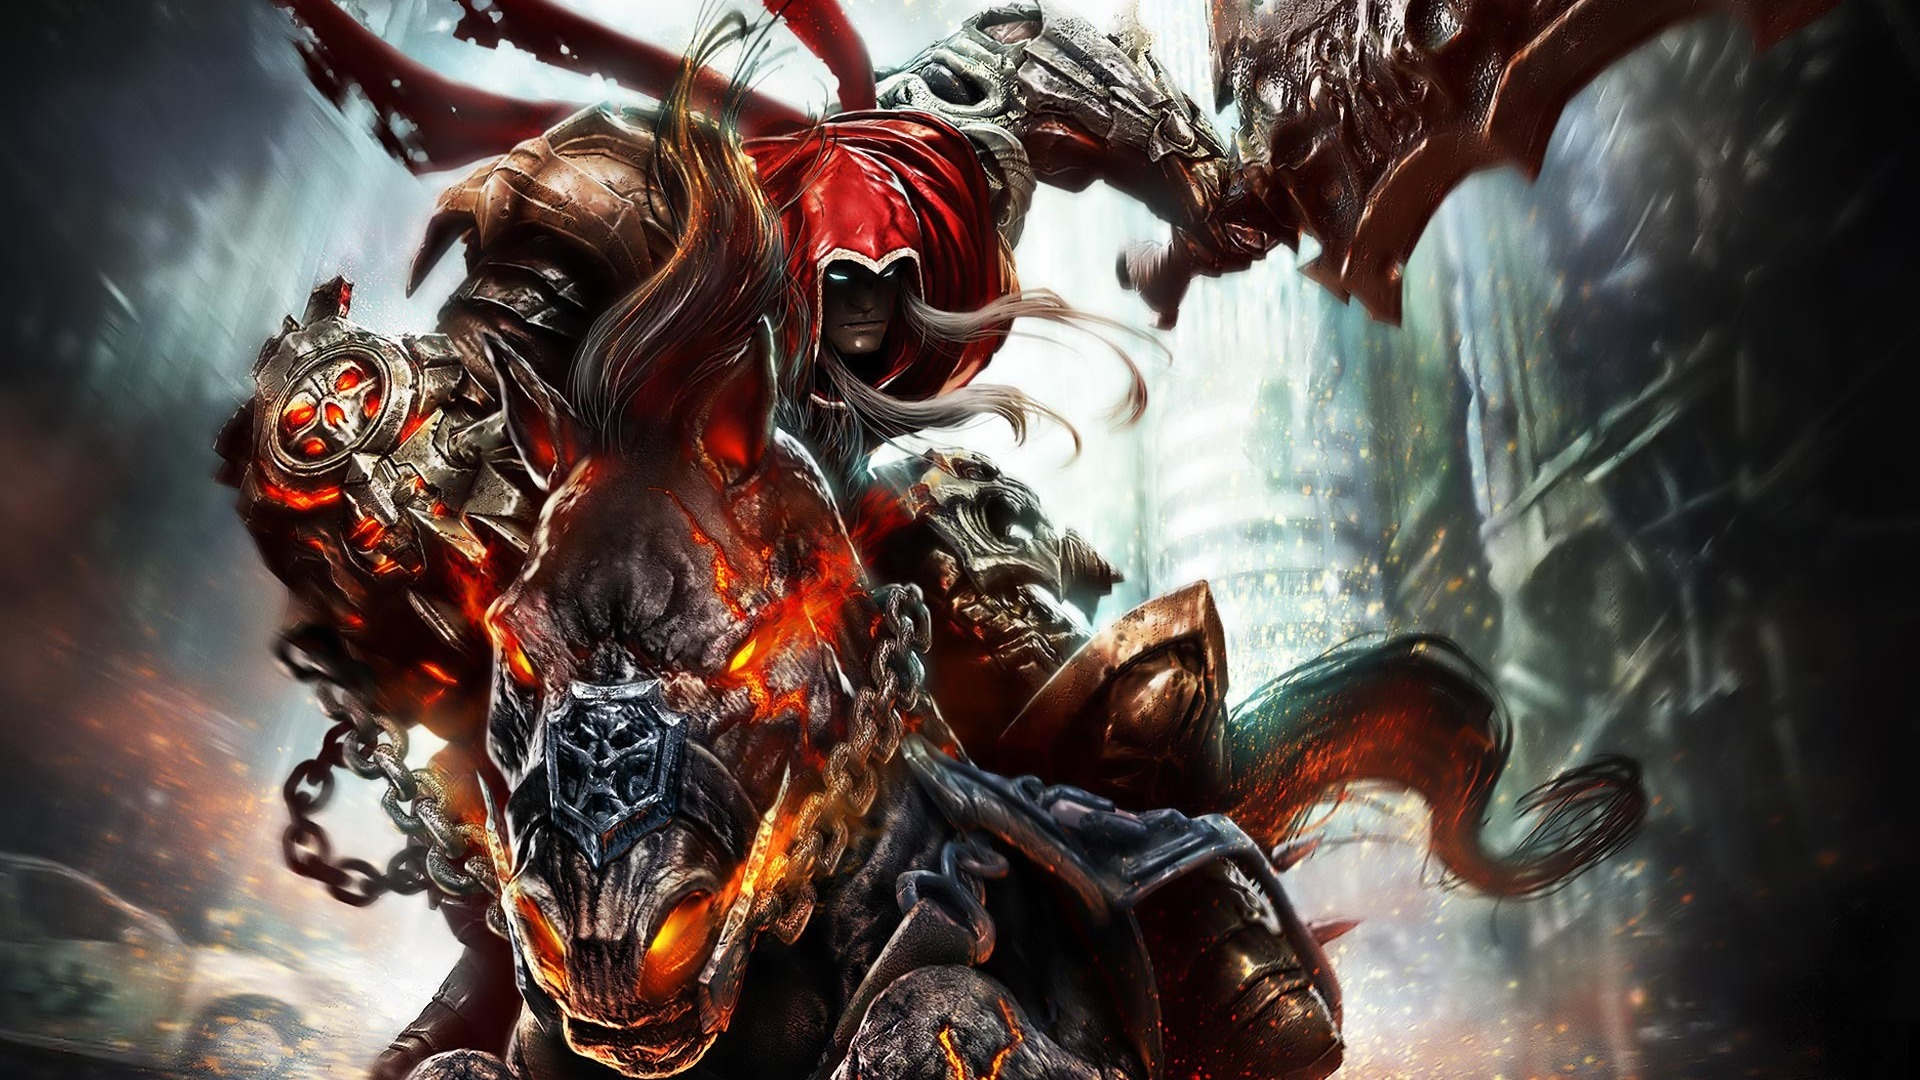 Free Darksiders Wallpaper 24692 1920x1080 px